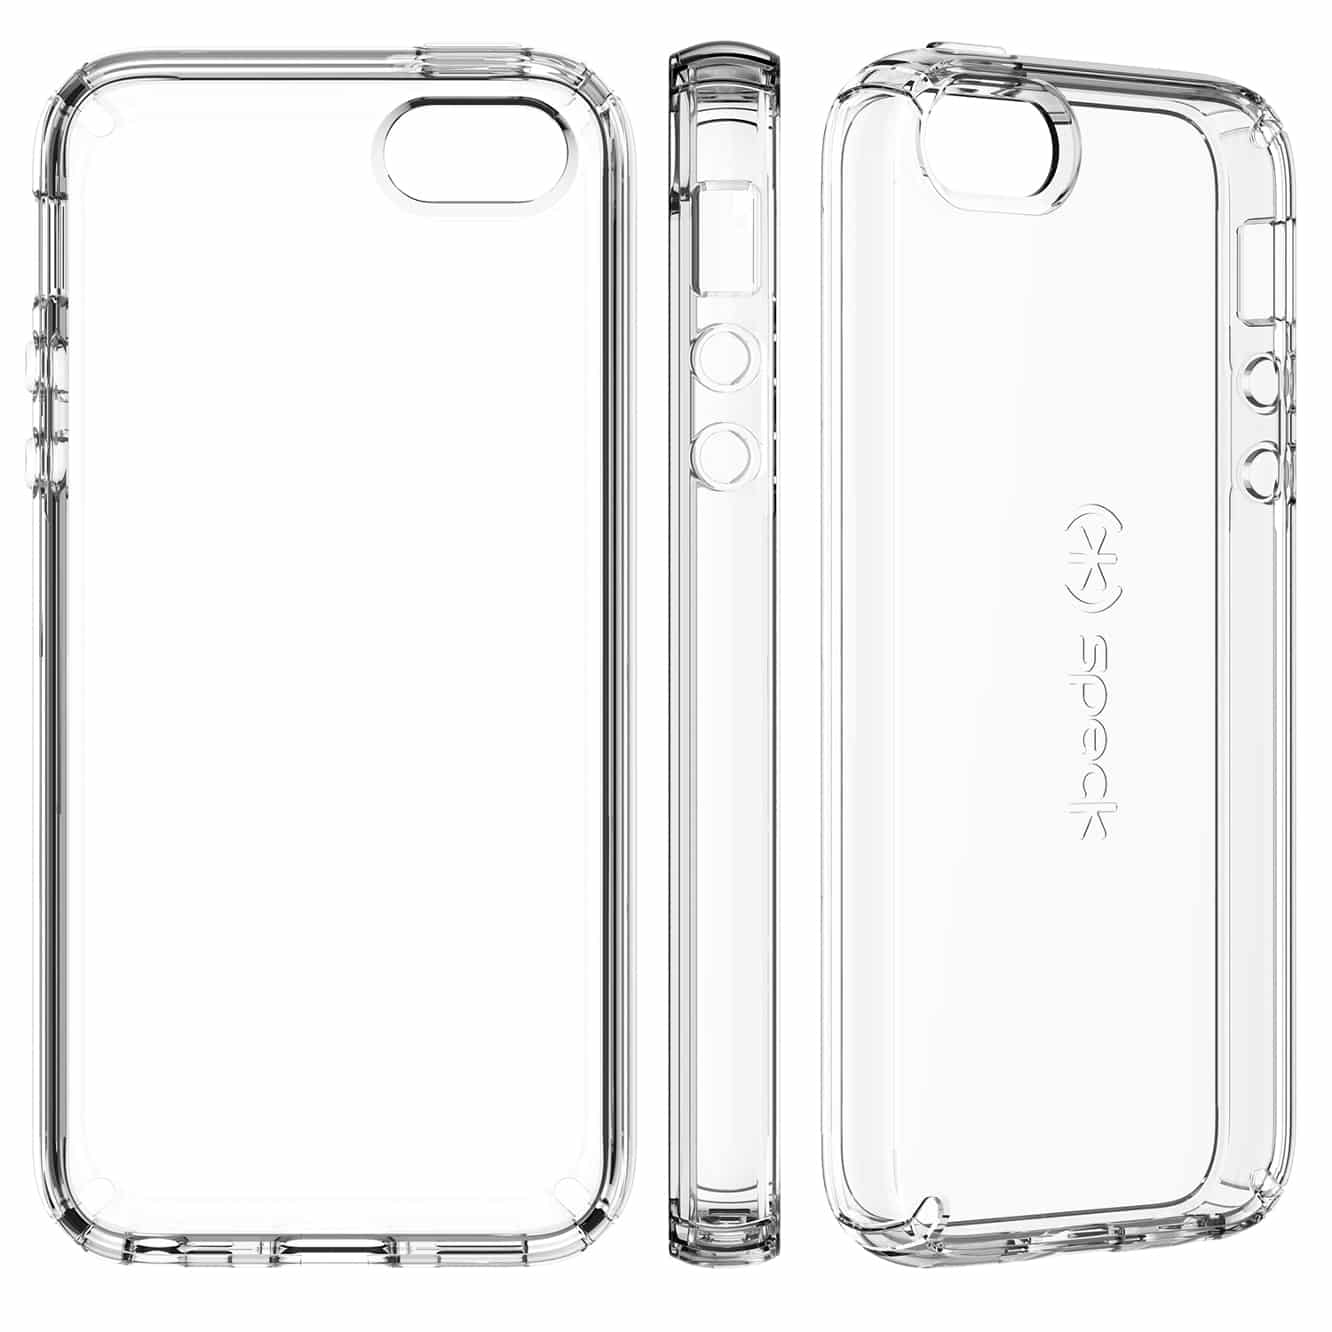 iPhone 5/5s cases to fit iPhone SE; companies debut cases for iPhone SE + new iPad Pro